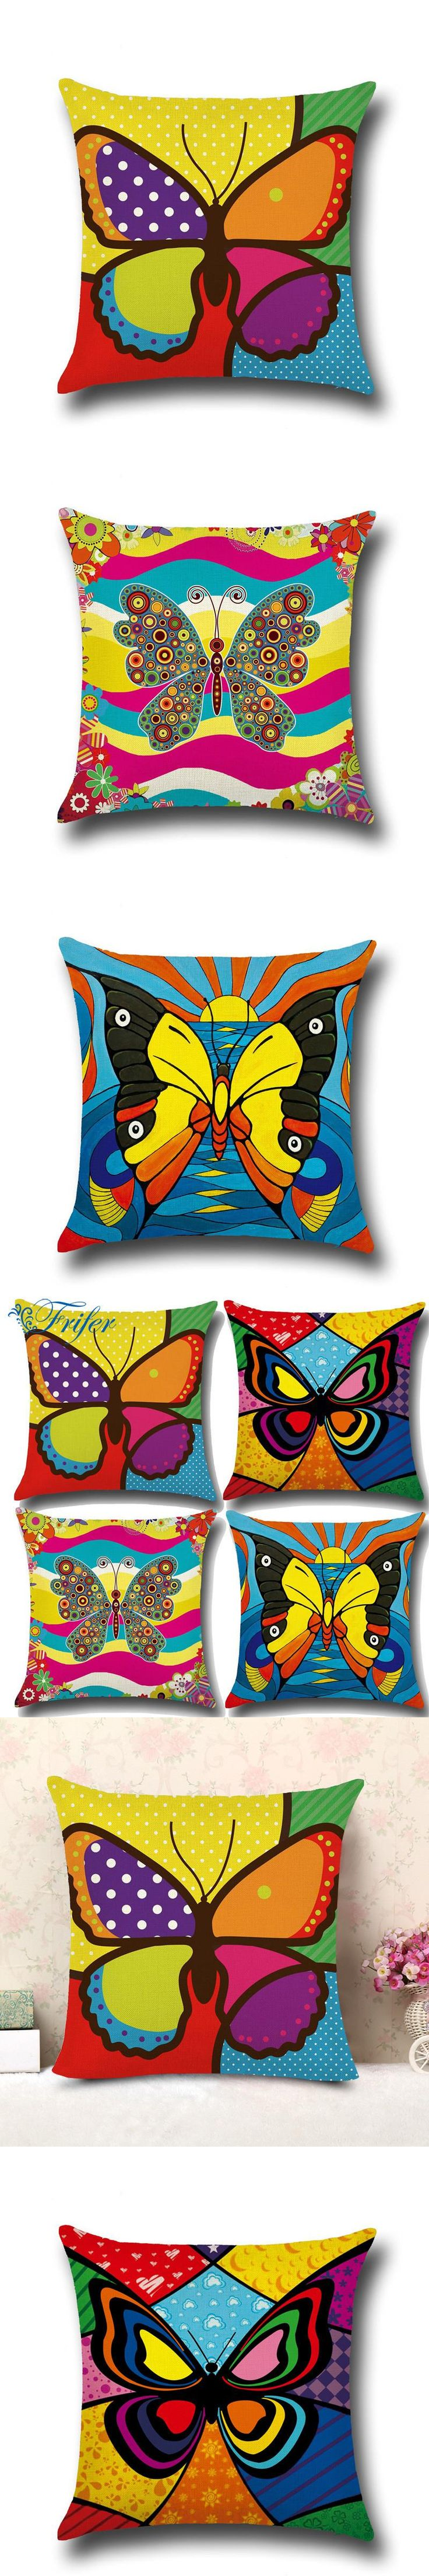 1pc 45x45cm Cushion Cover Linen Colorful Butterfly Patchwork Pillowcase Decorative Vintage Pillow Case for Sofa Bedroom Car